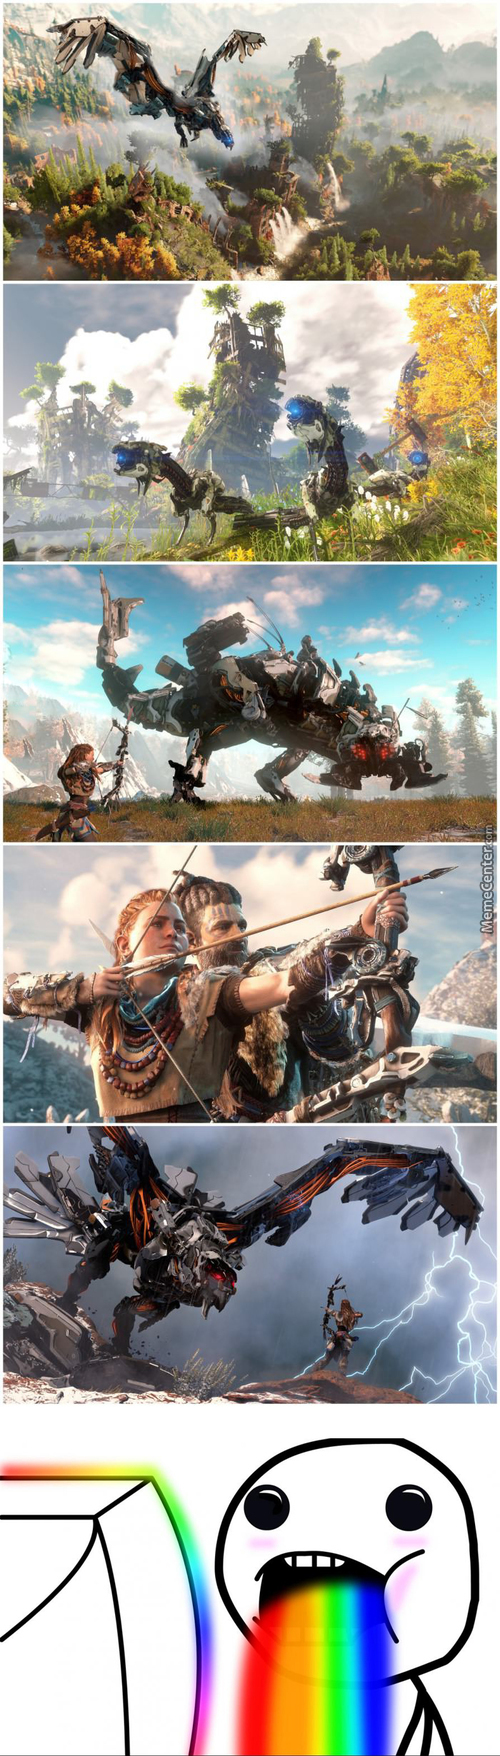 Please Don't Be Another Dud (Horizon Zero Dawn)